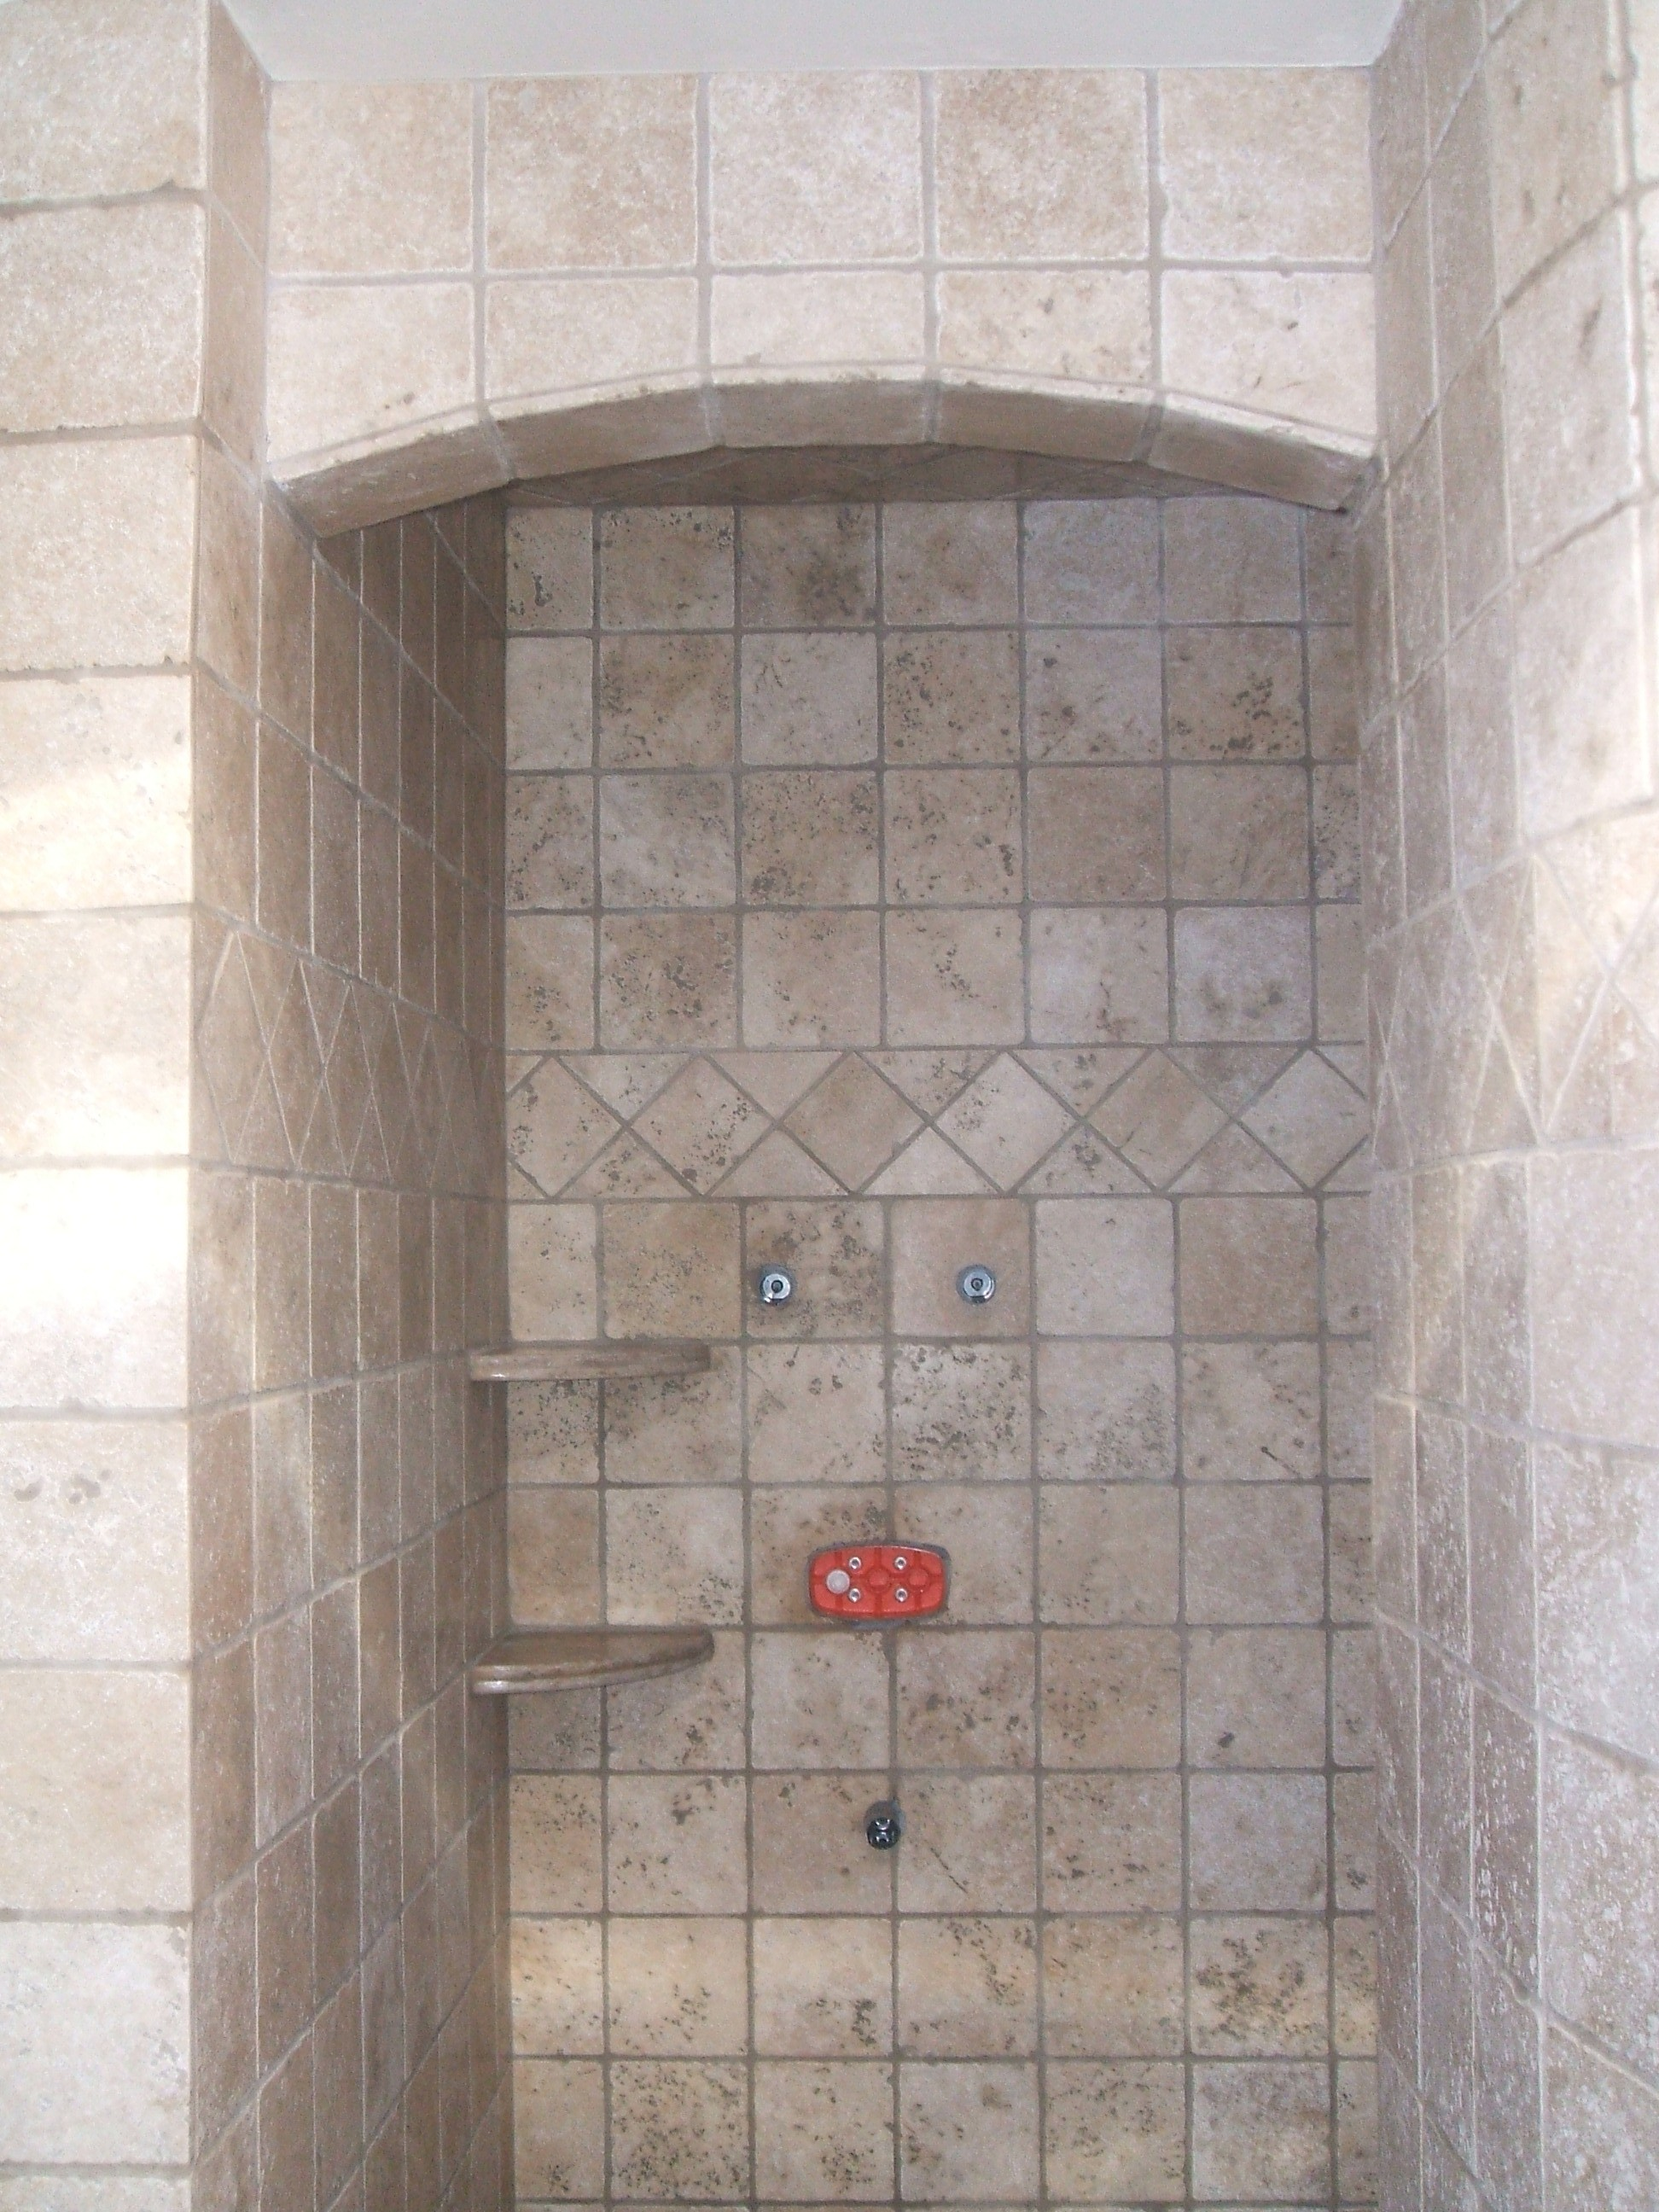 inspiration-bathroom-awesome-white-marble-tile-shower-ideas-and-corner-soap-storage-two-tier-diy-for-small-space-walk-in-shower-without-door-inpiring-designs-charming-tile-shower-ideas-for-bathroom-w